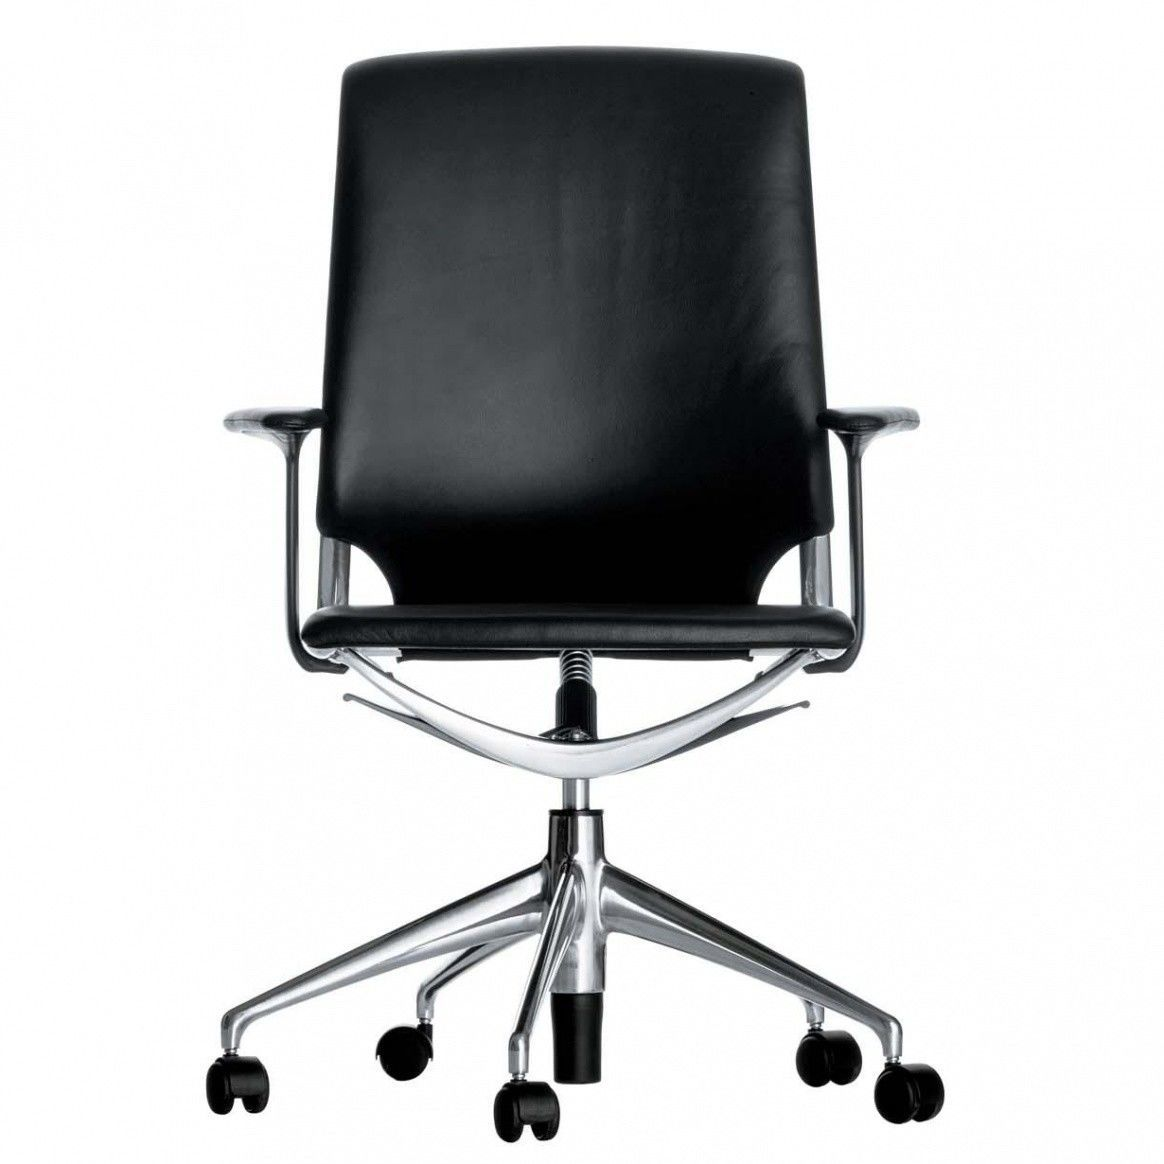 home brands vitra vitra meda chair office chair